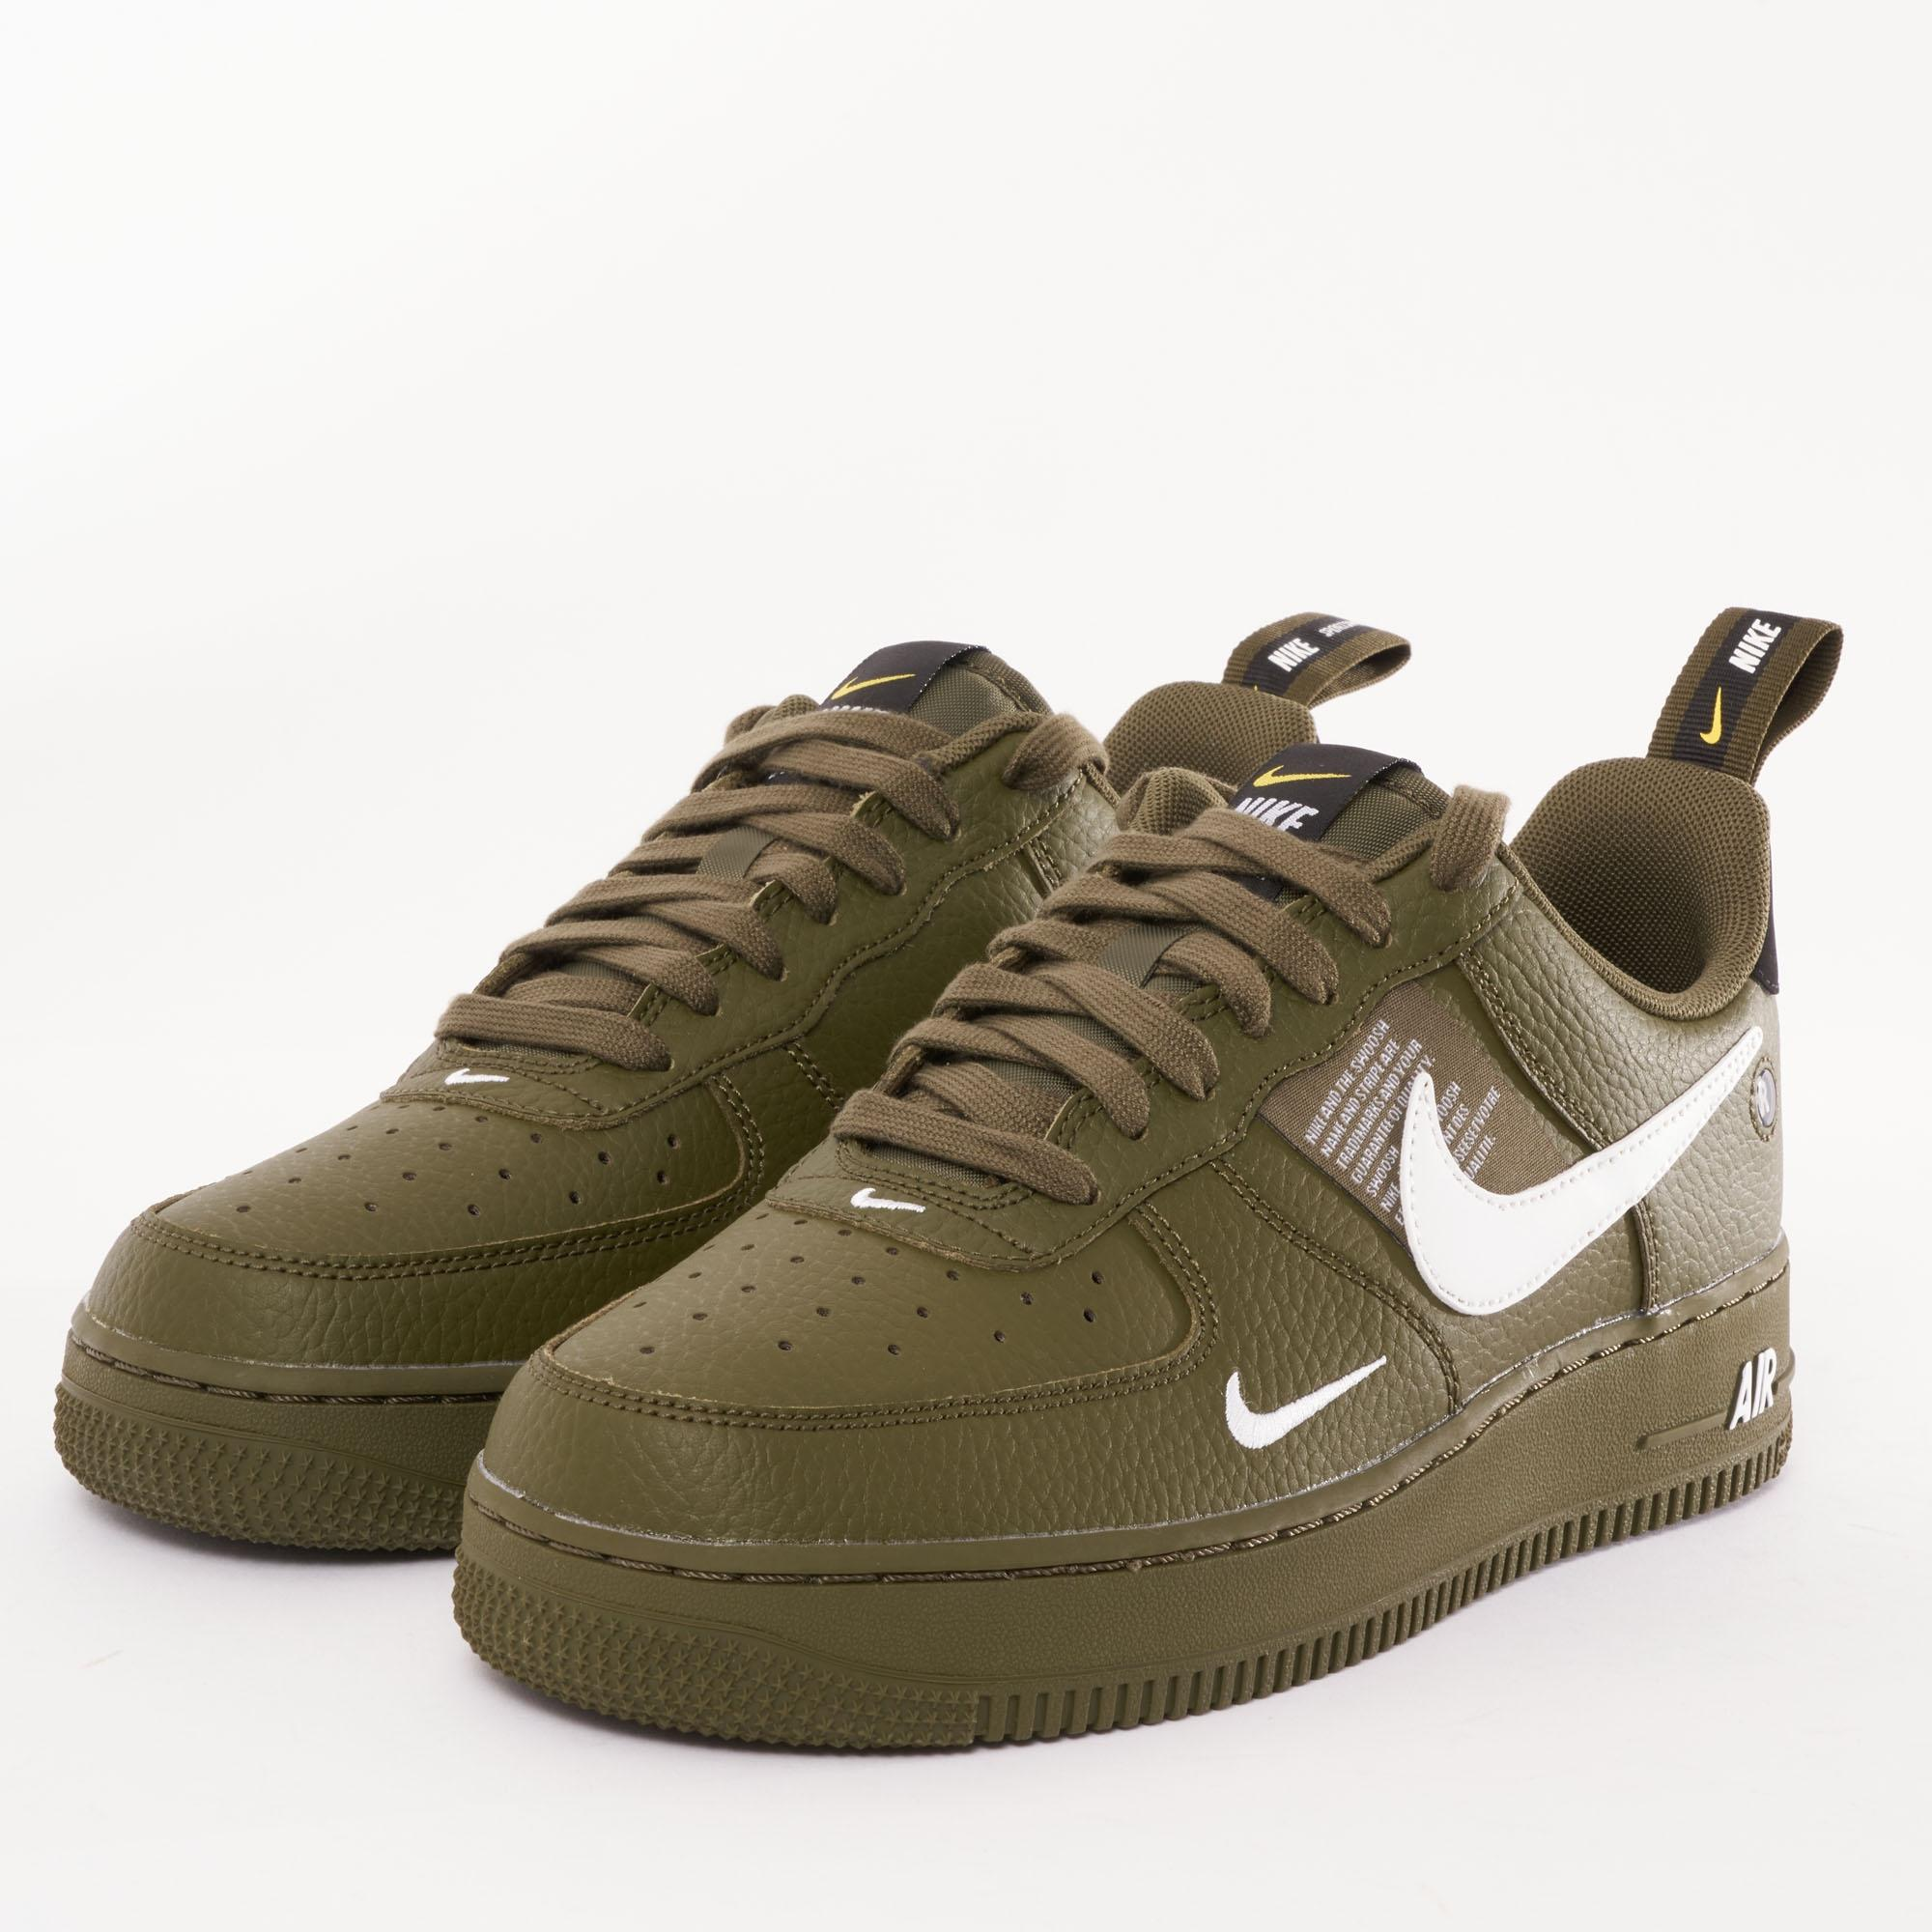 c68f4b05c76 Lyst - Nike Air Force 1 Utility Trainers in Green for Men